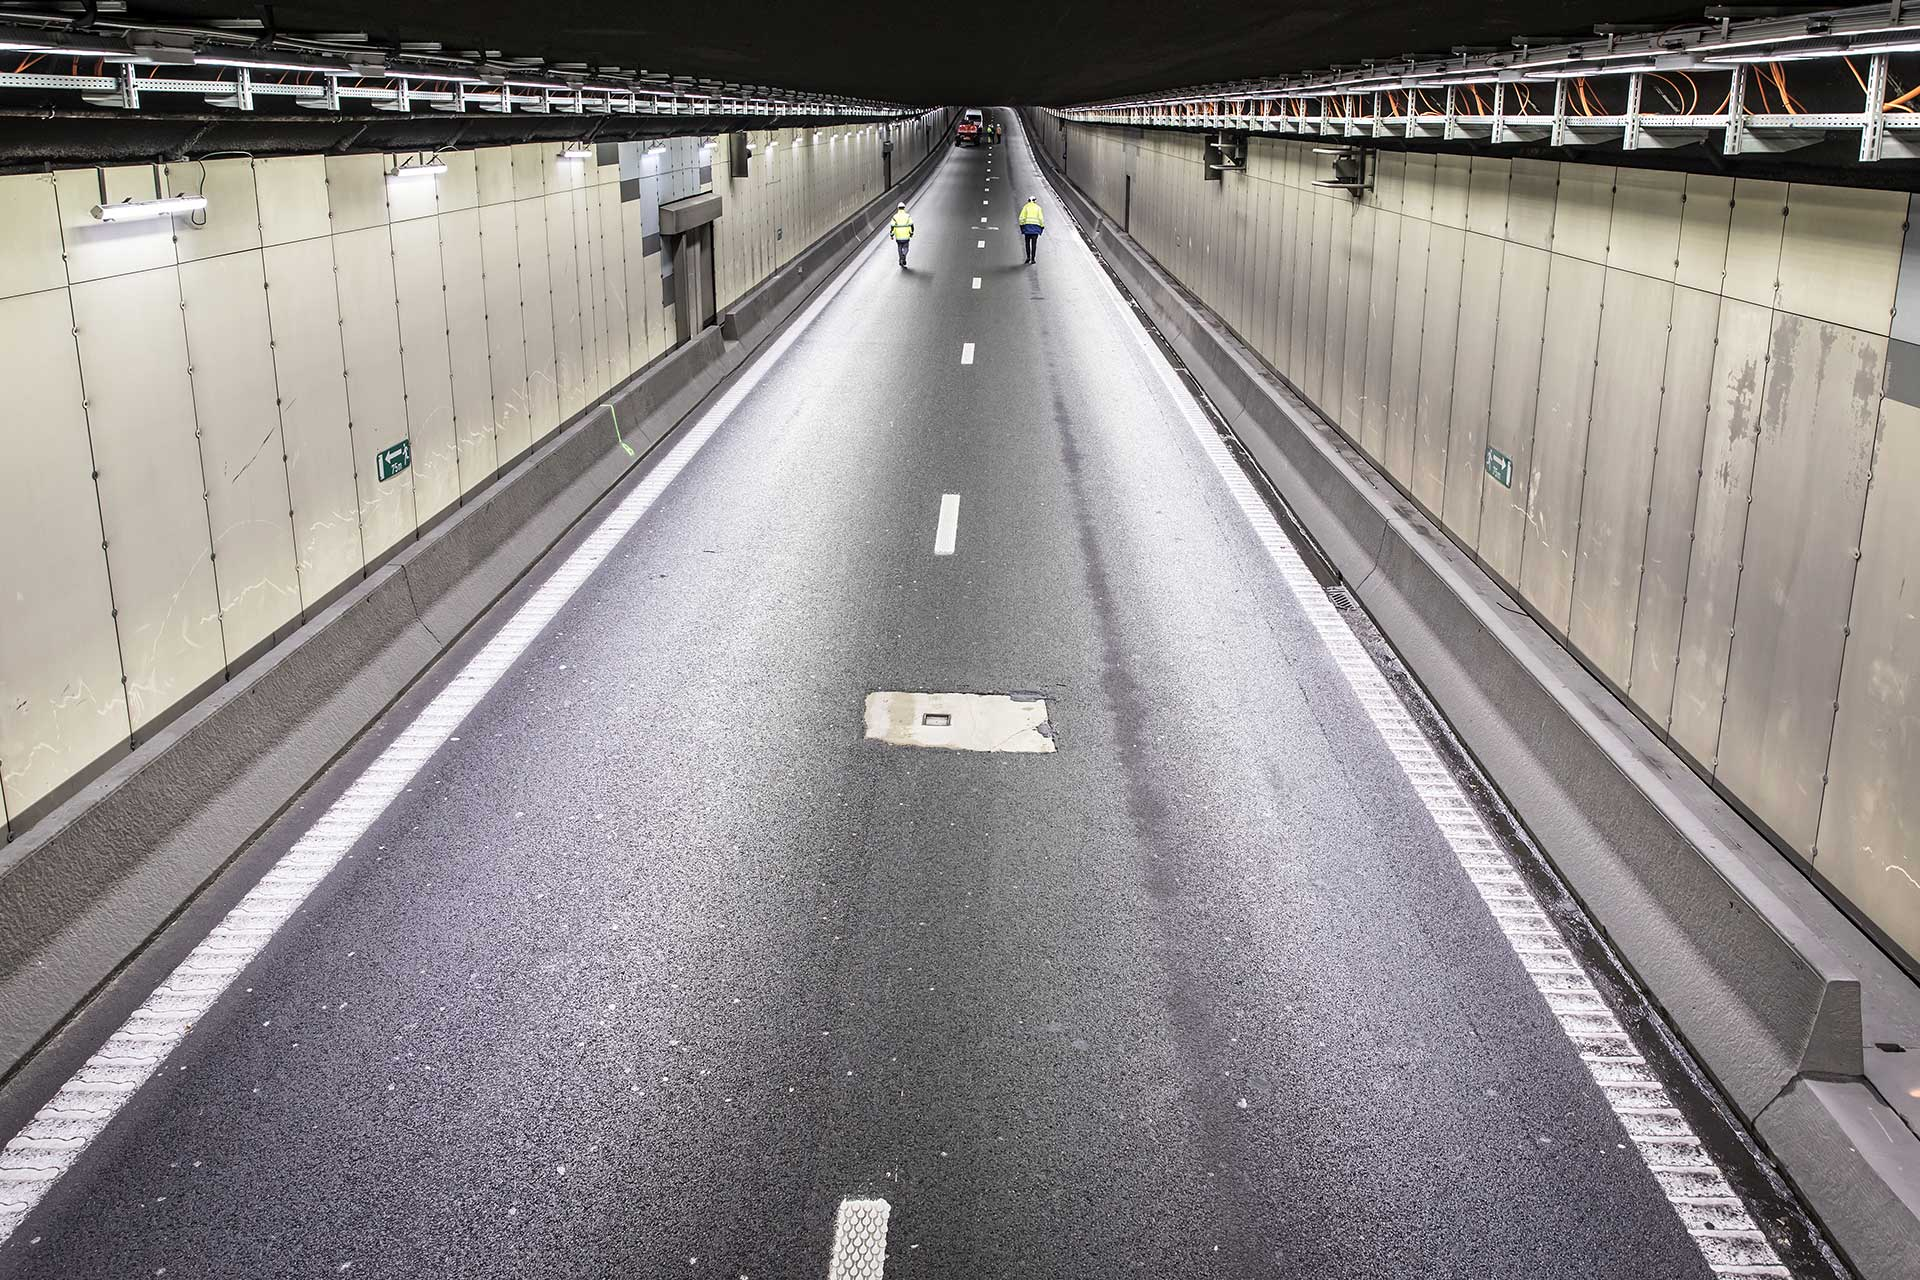 Schréder tunnel lighting solution dramatically cuts energy costs for Tervuren Tunnel while optimising safety